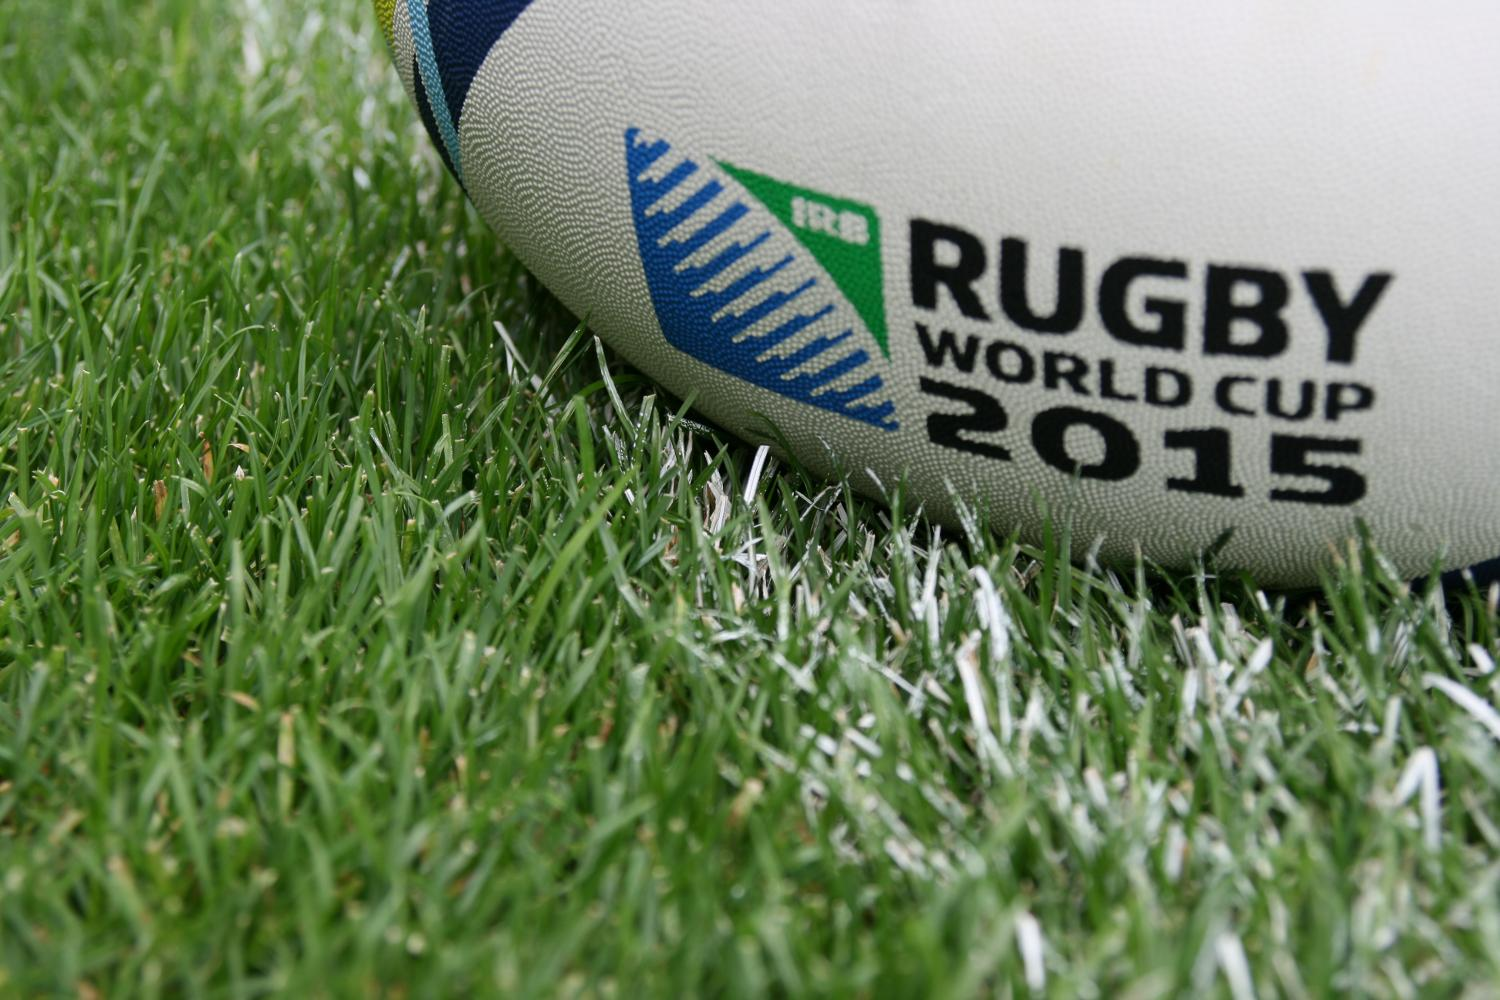 Rugby World Cup 2015 match ball